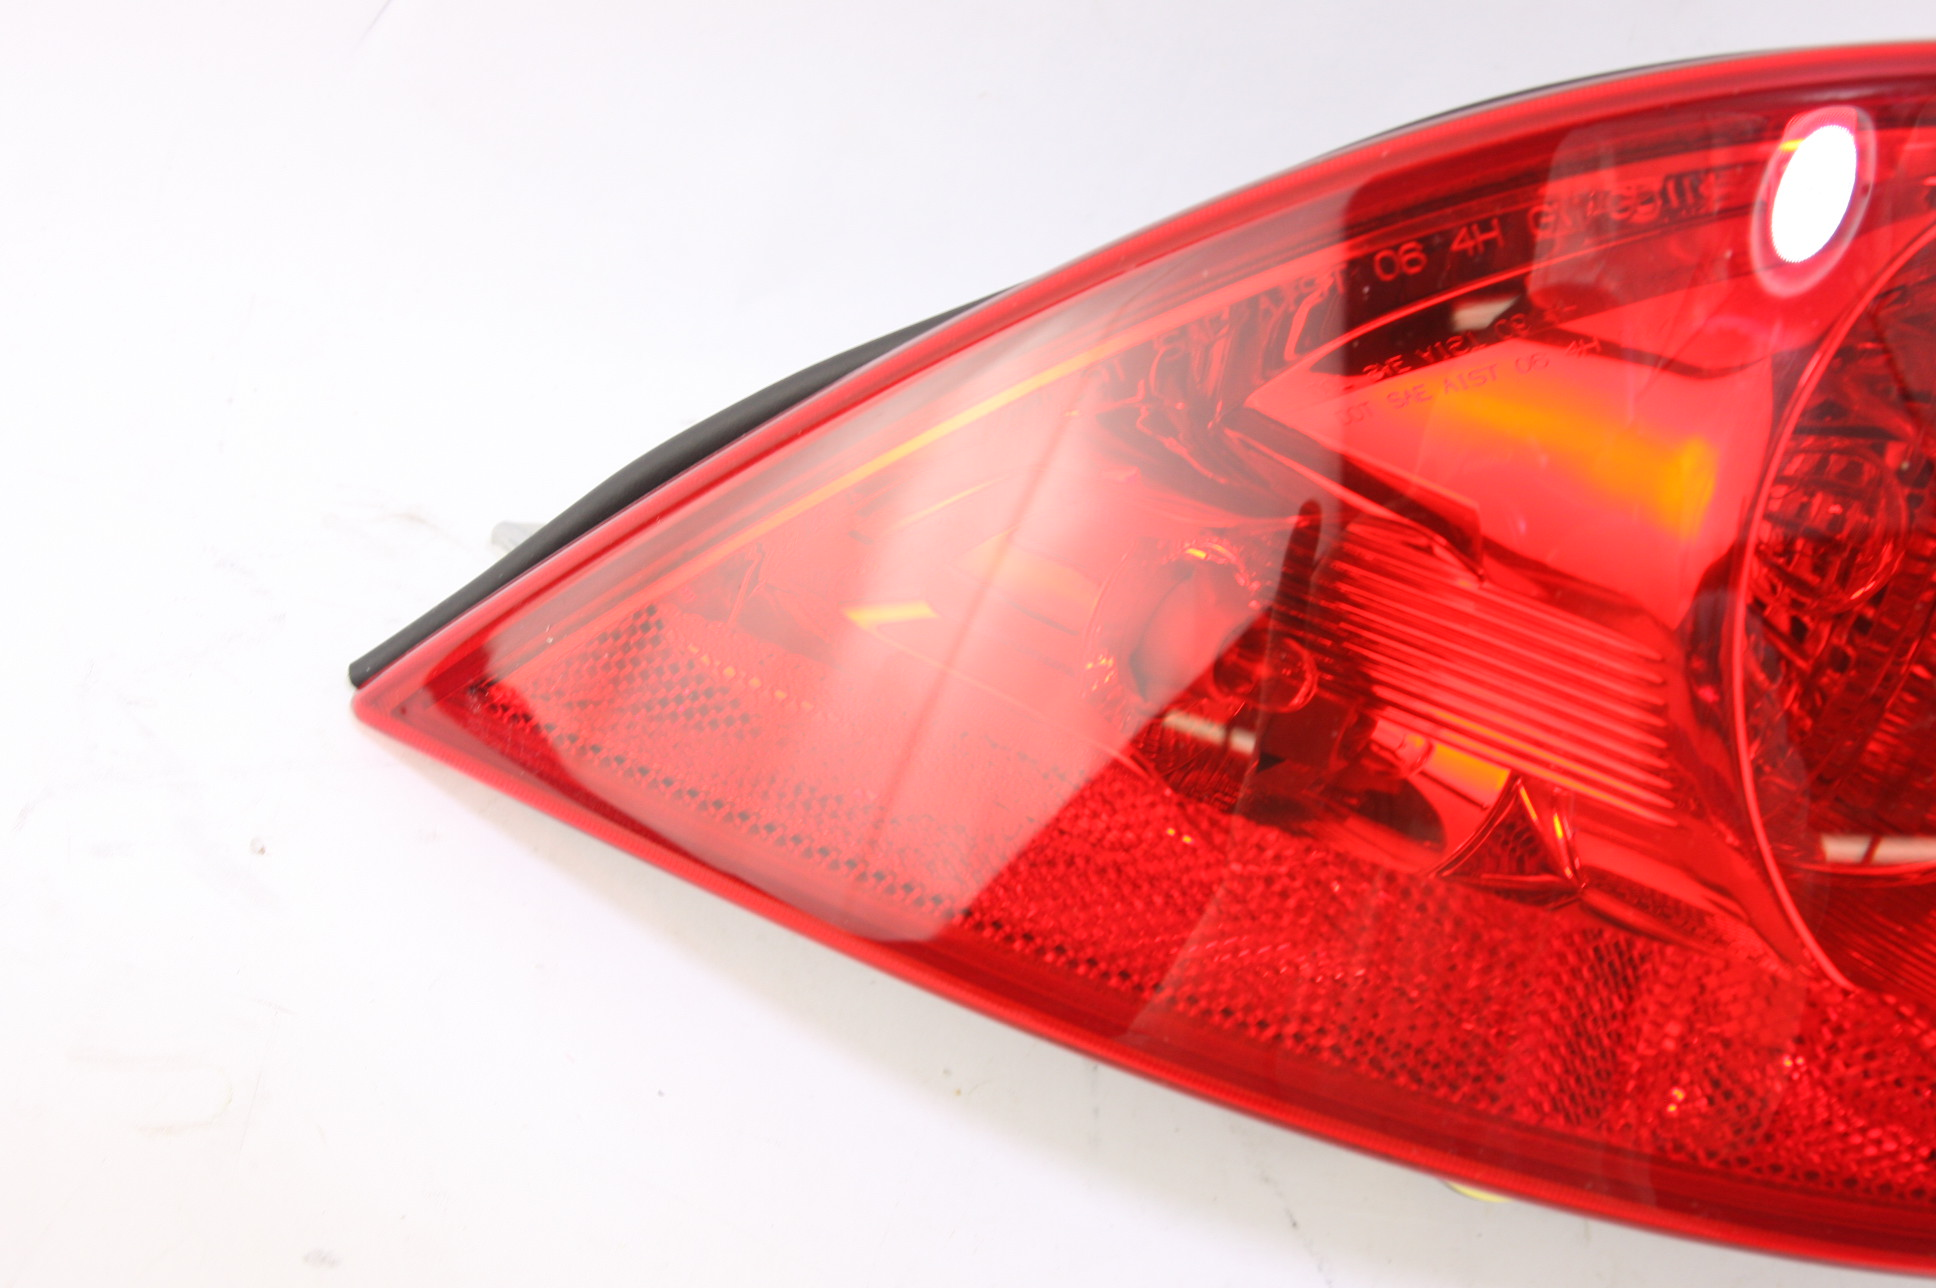 New GM OEM 25927355 06-11 Lucerne Tail Light Lamp Outer Driver Side LH NIP - image 4